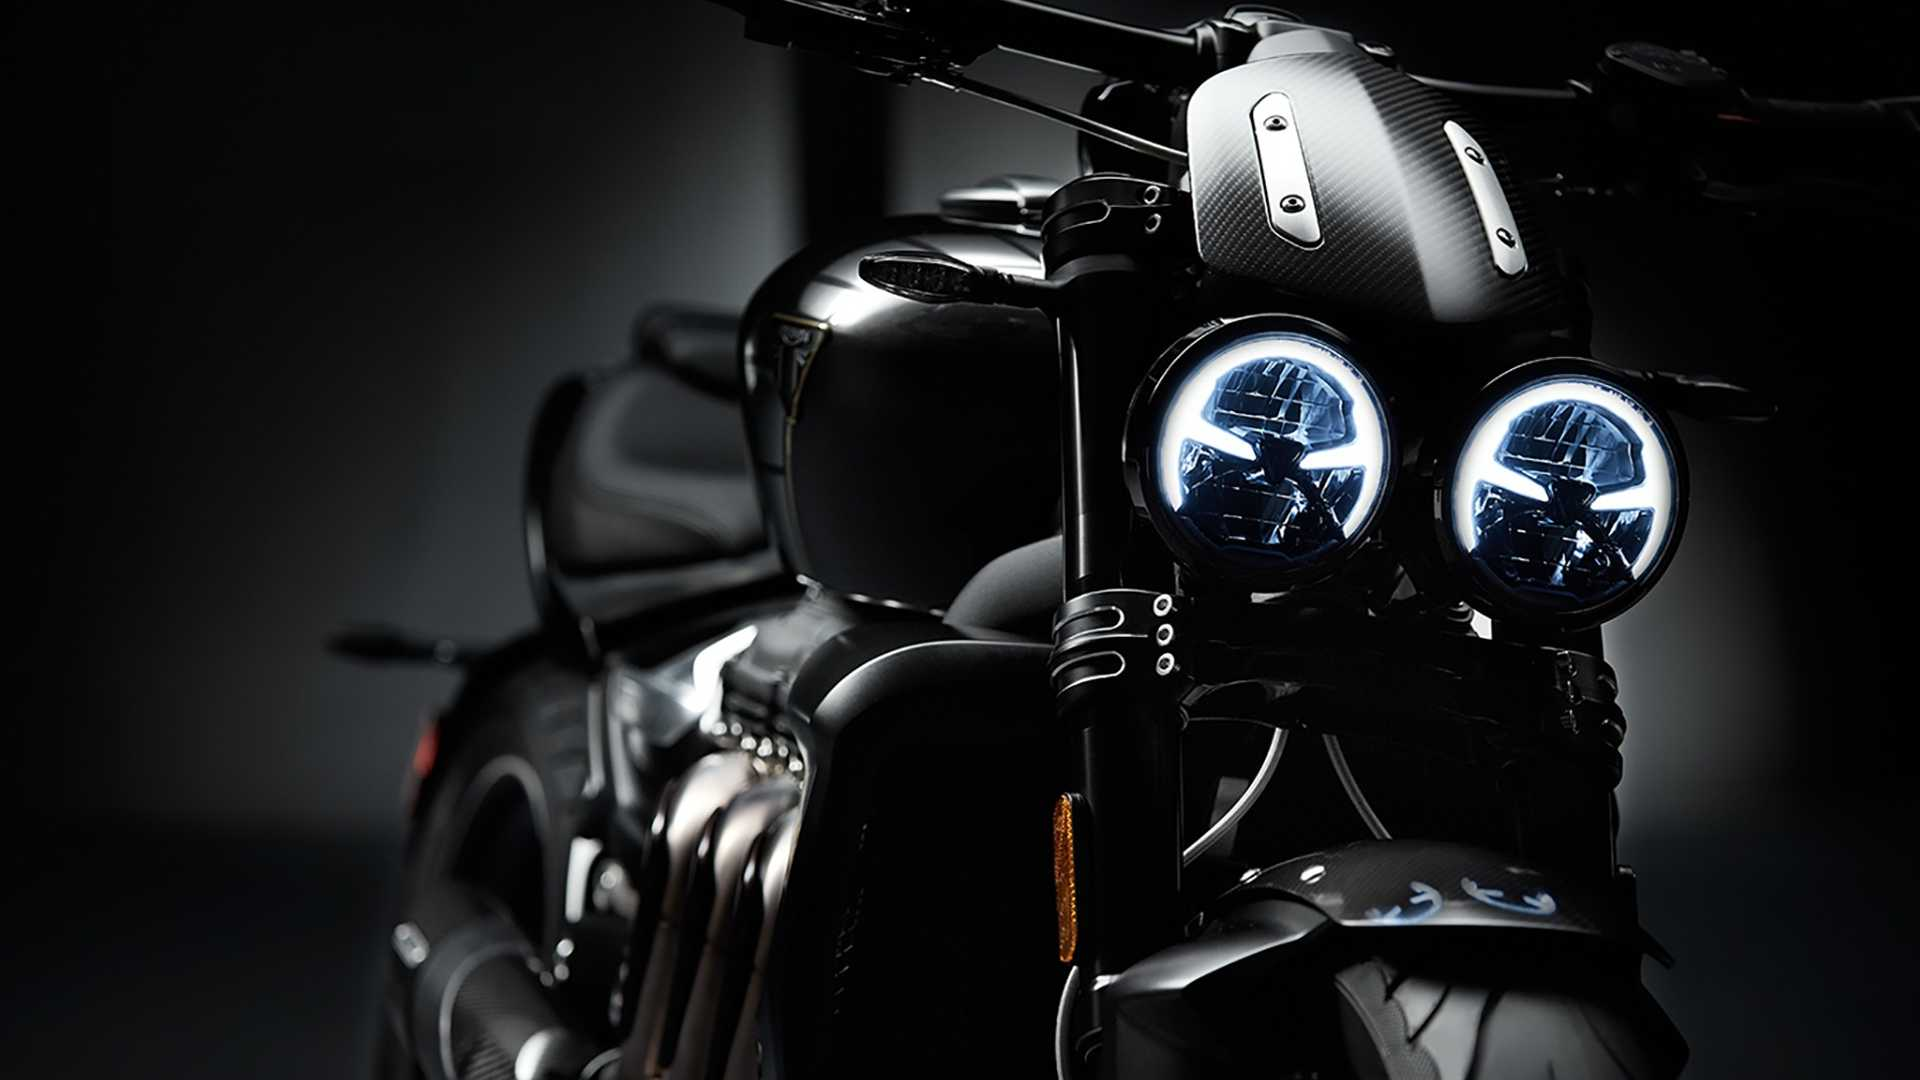 Triumph Shows Off New Rocket 3 Tfc With Upsized Engine